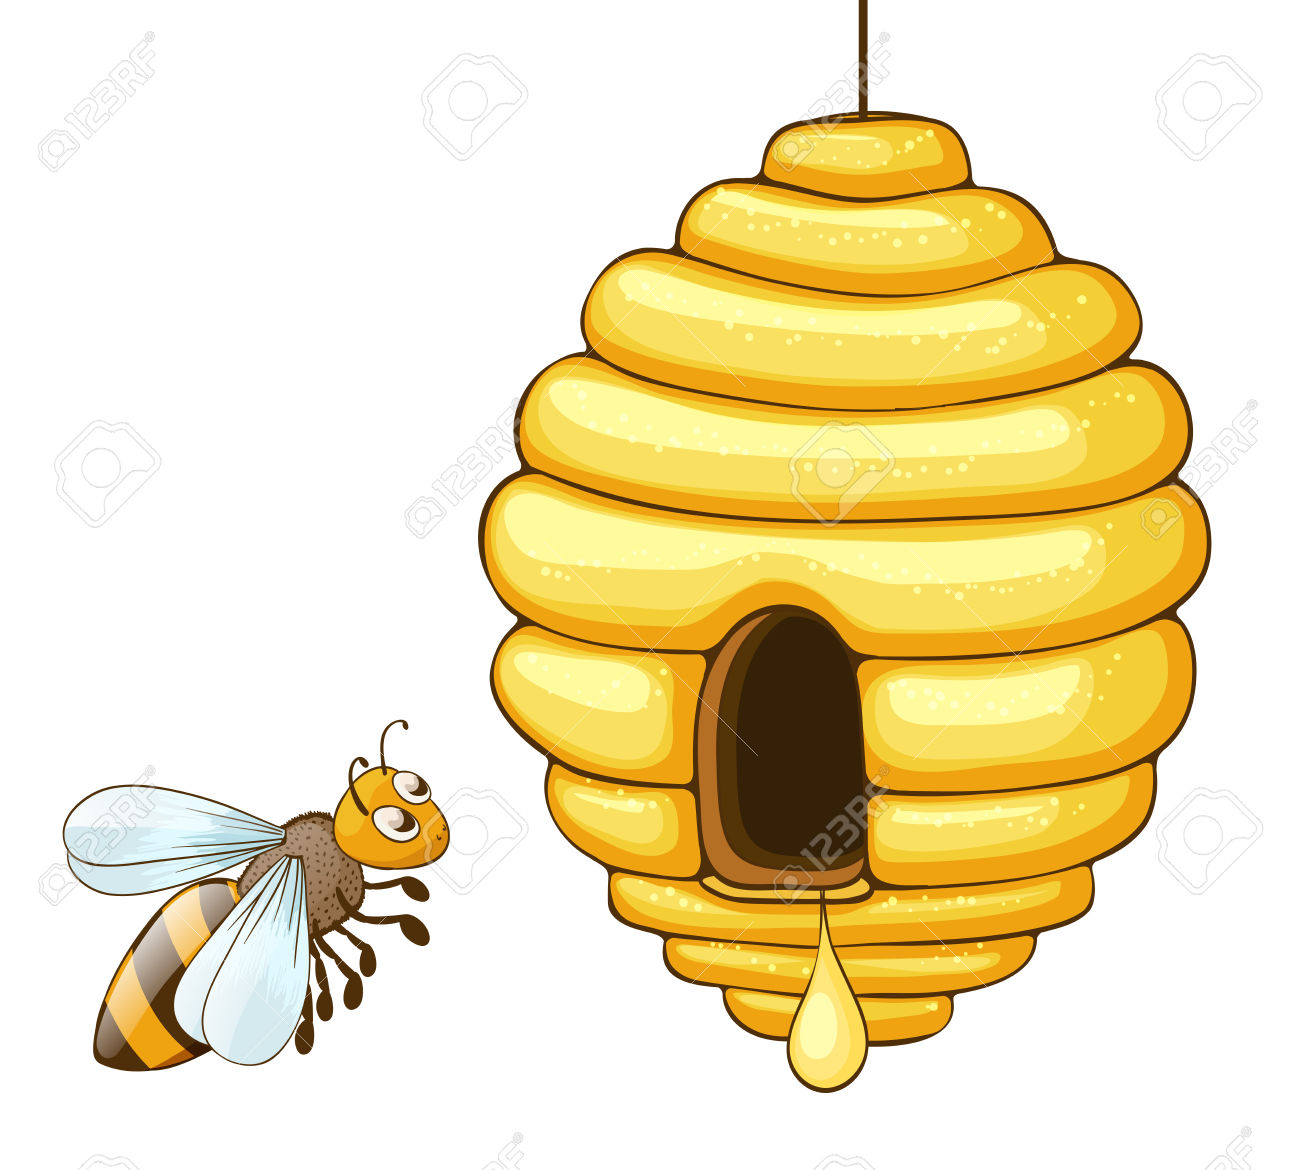 Bee hives in trees clipart picture transparent download Bee Hive Clipart | Free download best Bee Hive Clipart on ClipArtMag.com picture transparent download